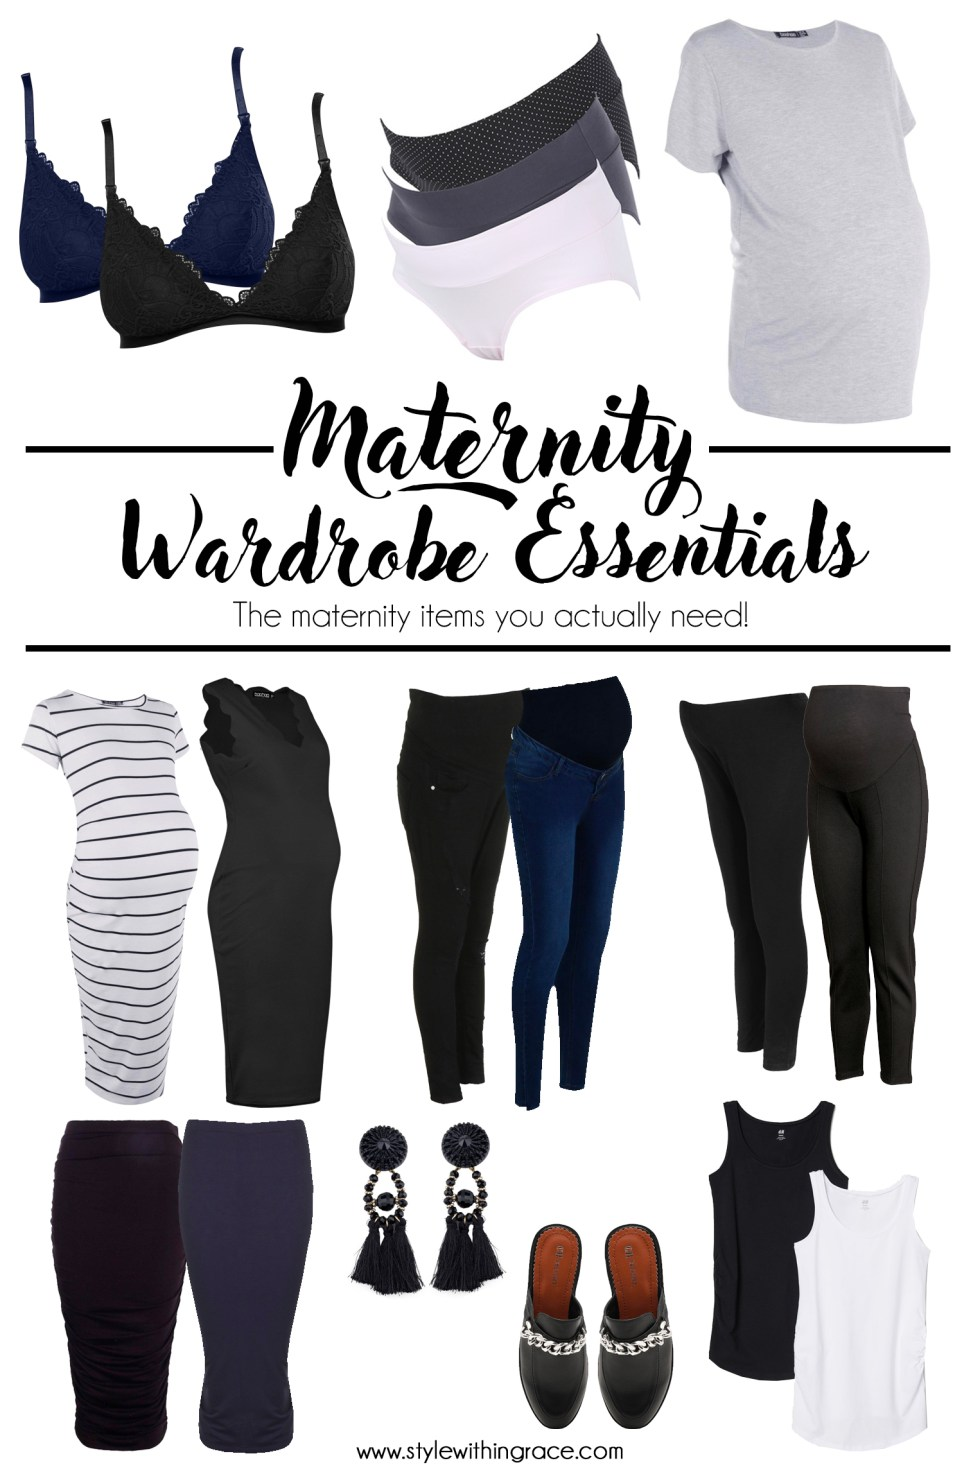 My top 10 maternity wardrobe essentials that you absolutely need to get through your first pregnancy. Awesome and versatile closet basics that you can stock up on to take you through pregnancy in style and comfort!